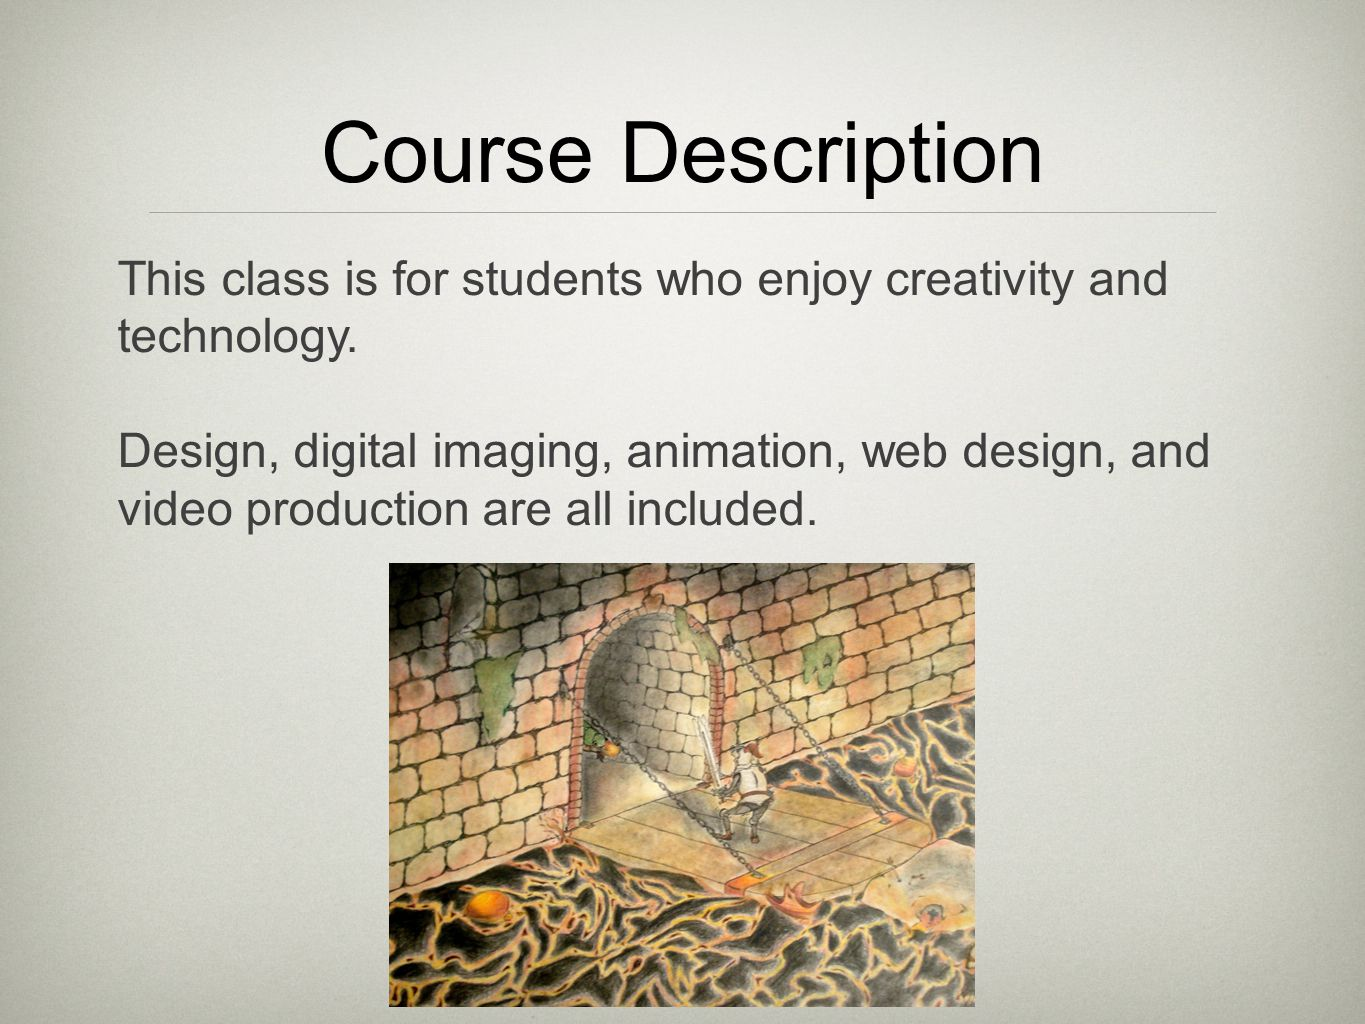 This class is for students who enjoy creativity and technology.